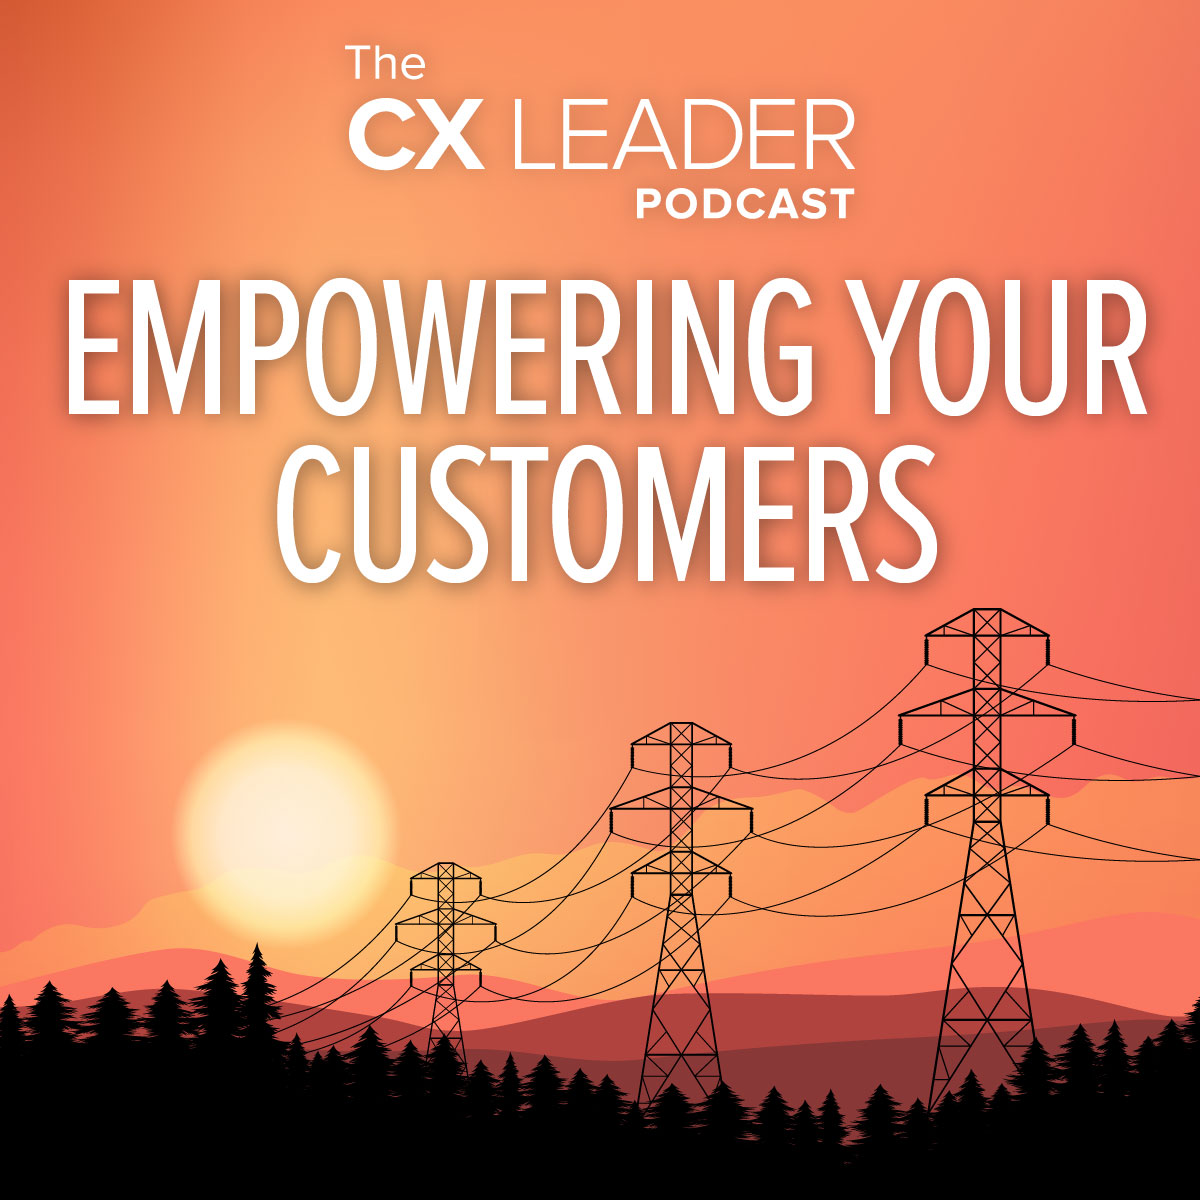 Empowering Your Customers